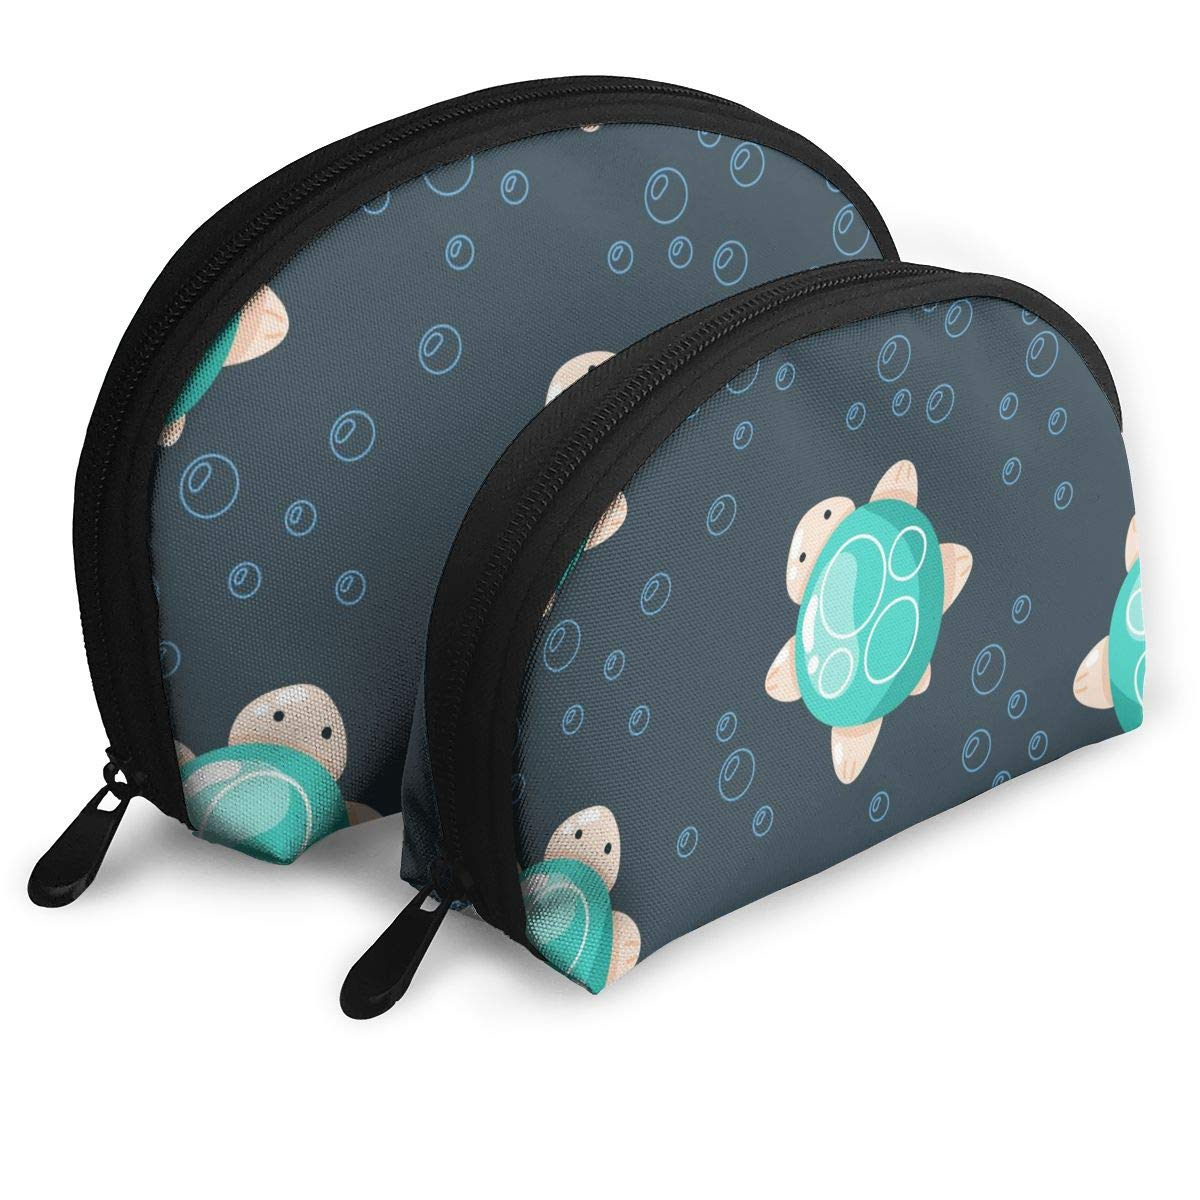 Cute Sea Turtle Creatures Portable Toiletry Bag Makeup Bag Portable Travel Bags Makeup Clutch Pouch Coin Purse Set 2 Piece